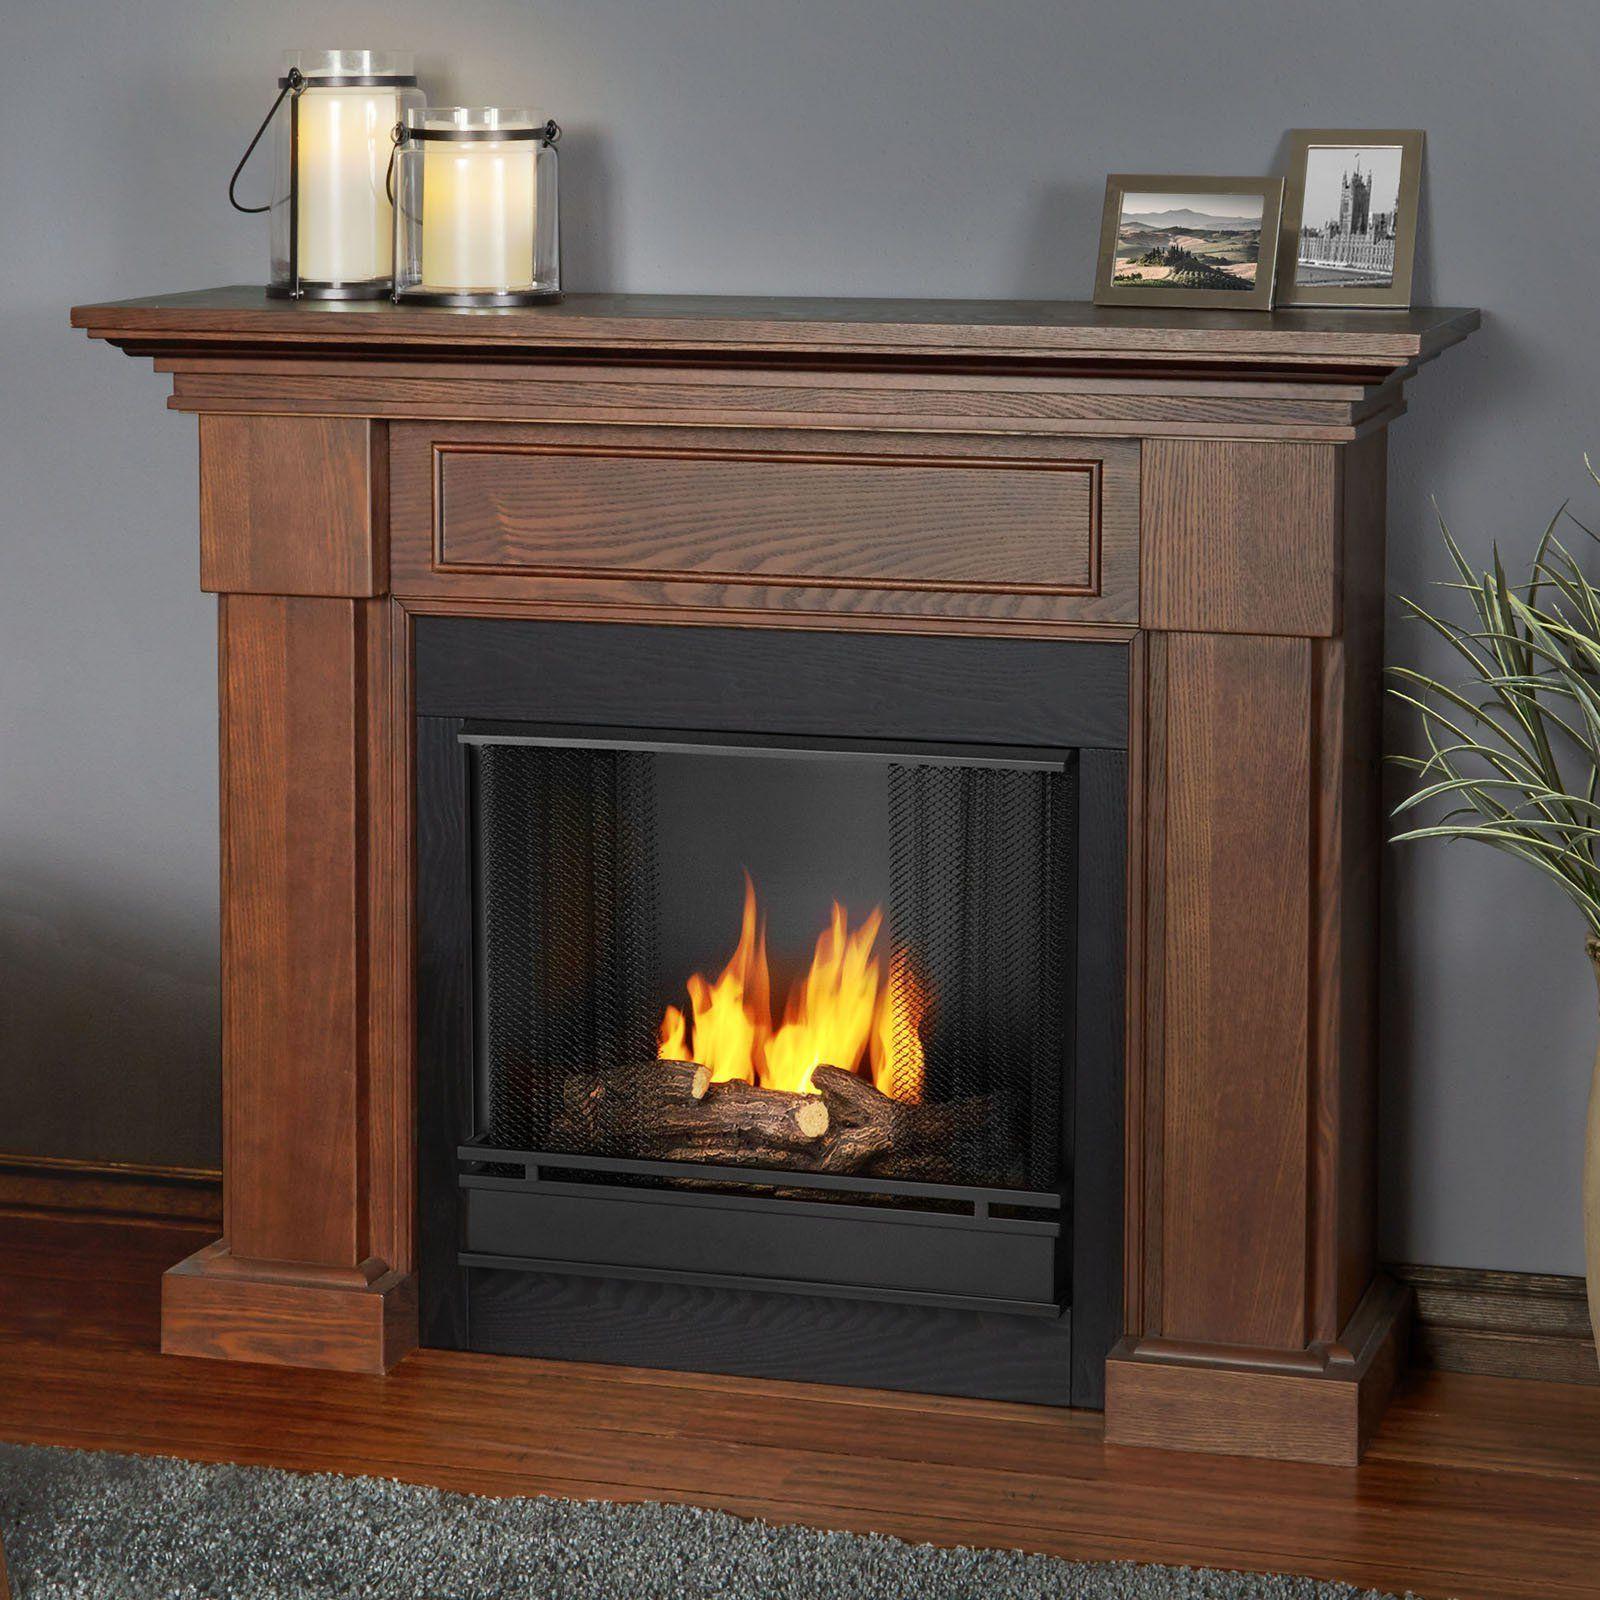 Real Flame Hillcrest Ventless Gel Fuel Fireplace from hayneedle